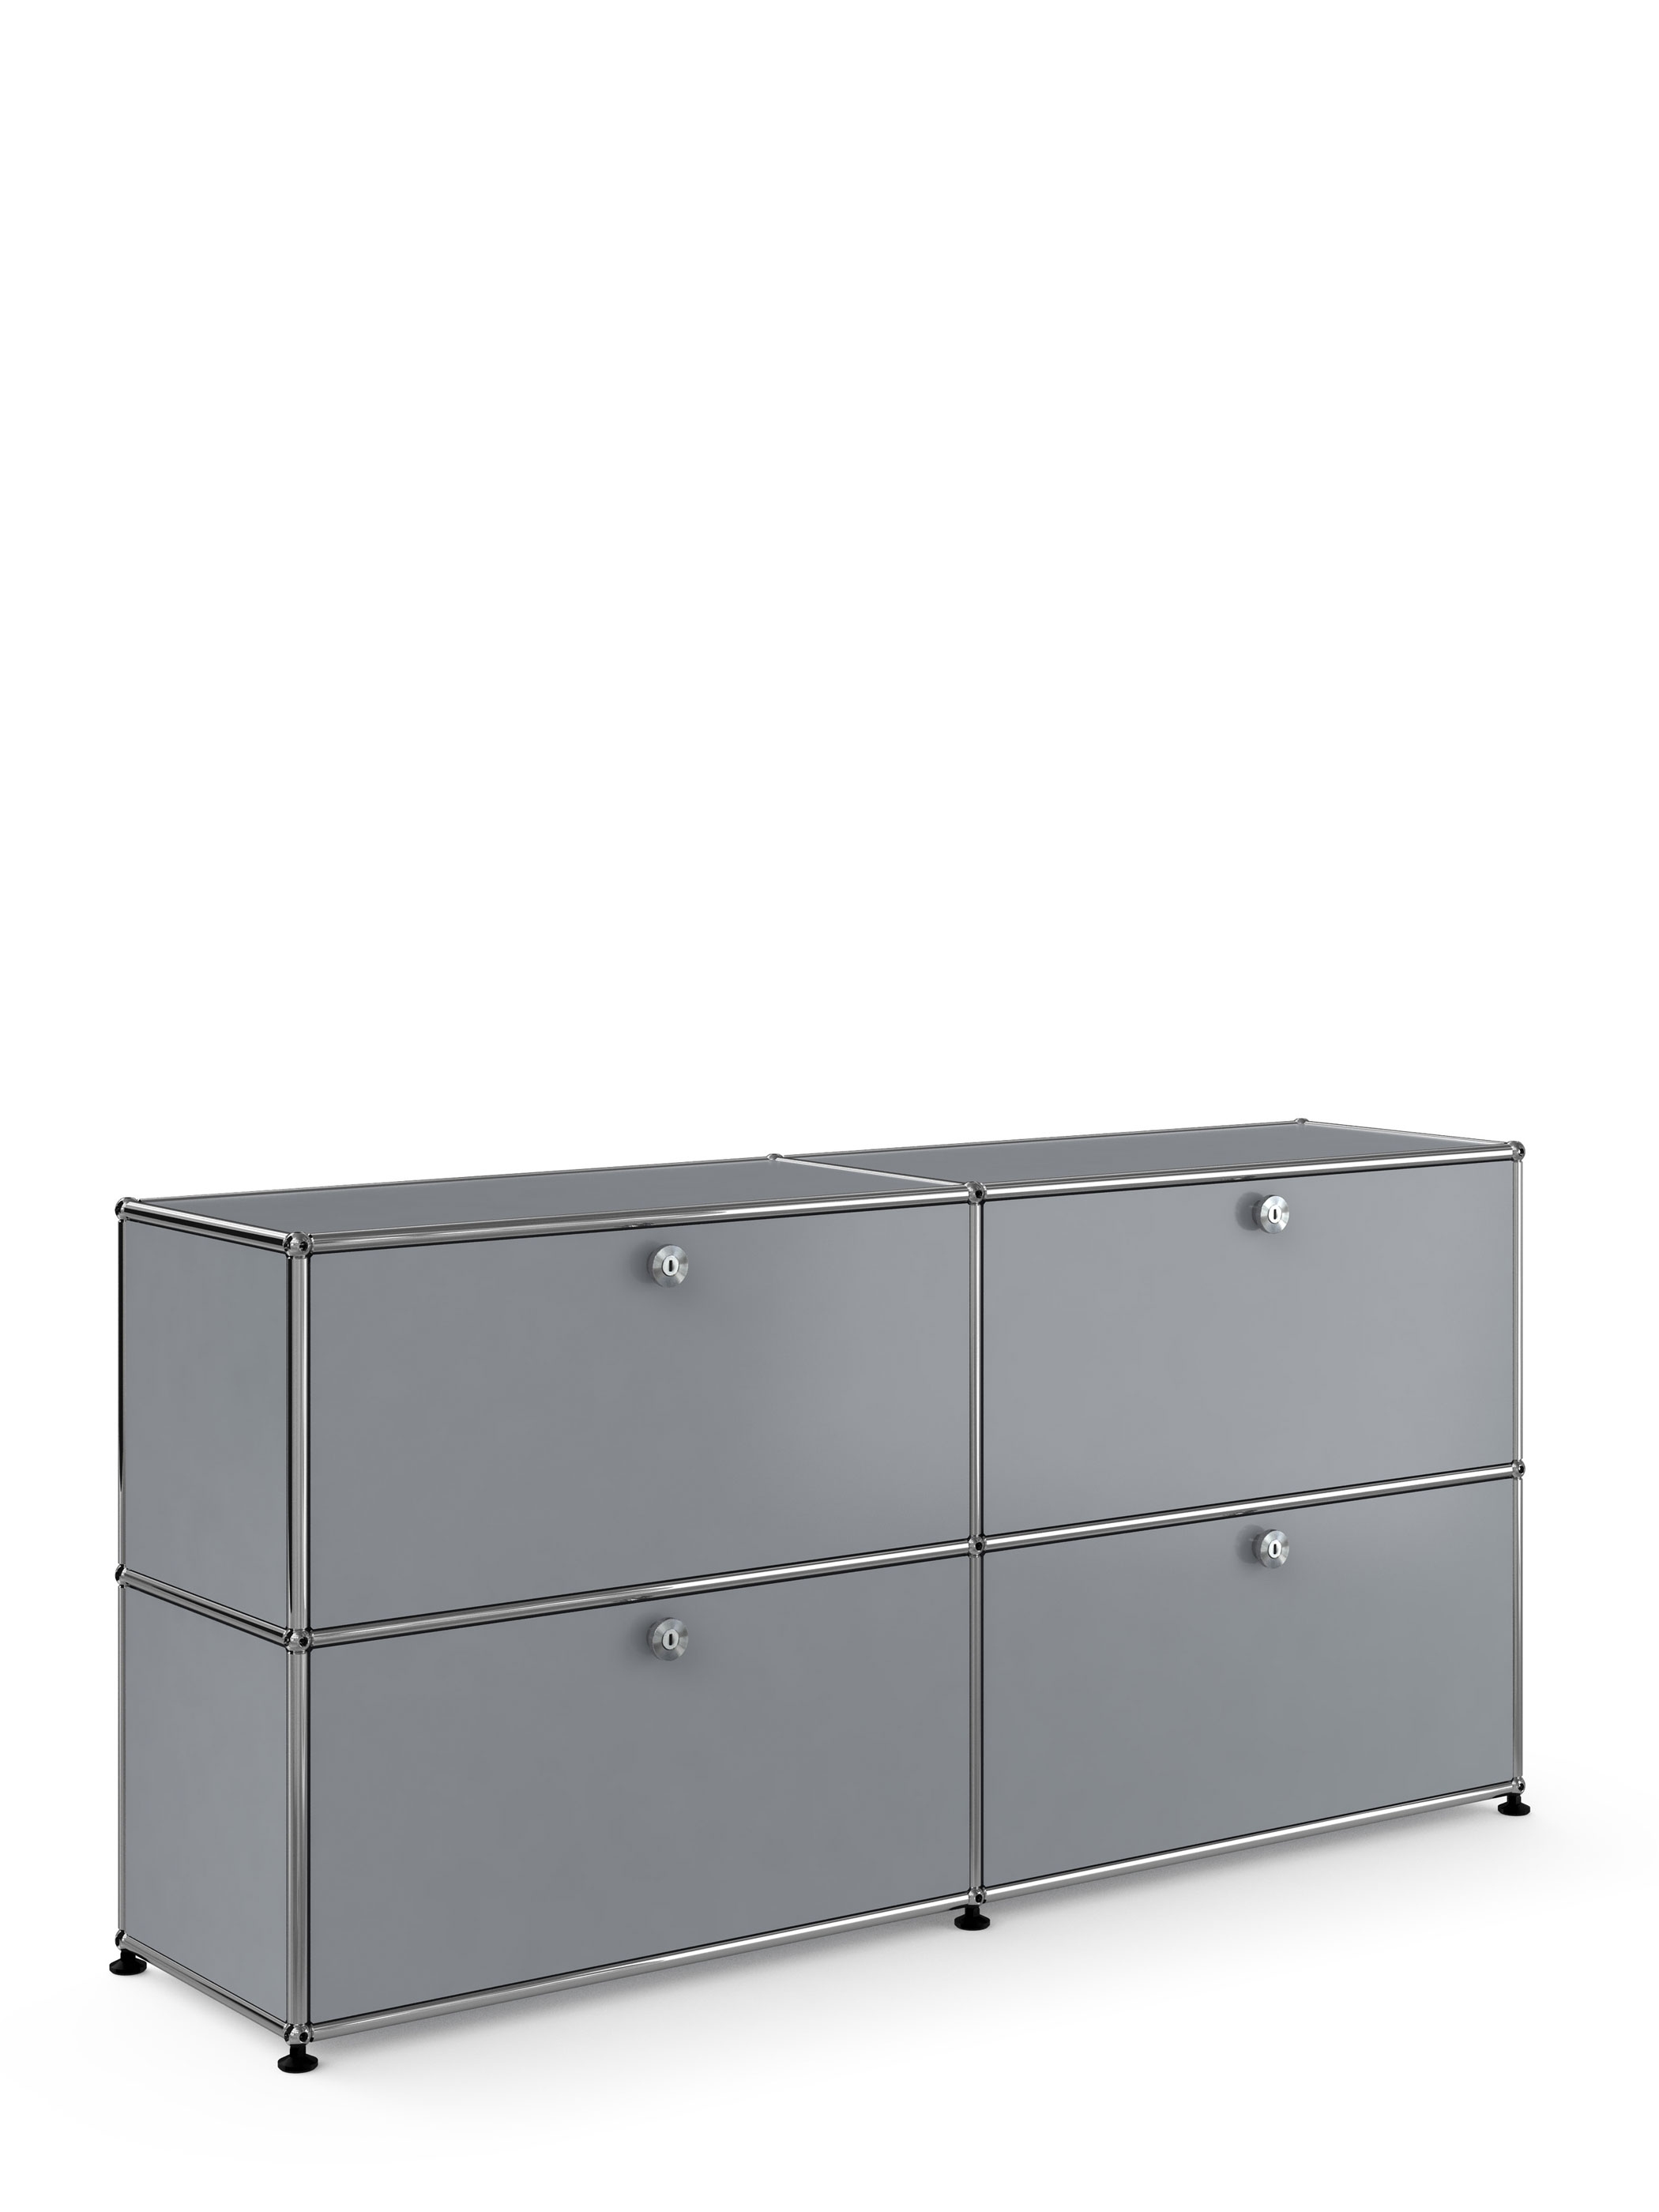 usm usm haller sideboard u6002 produktdetails. Black Bedroom Furniture Sets. Home Design Ideas